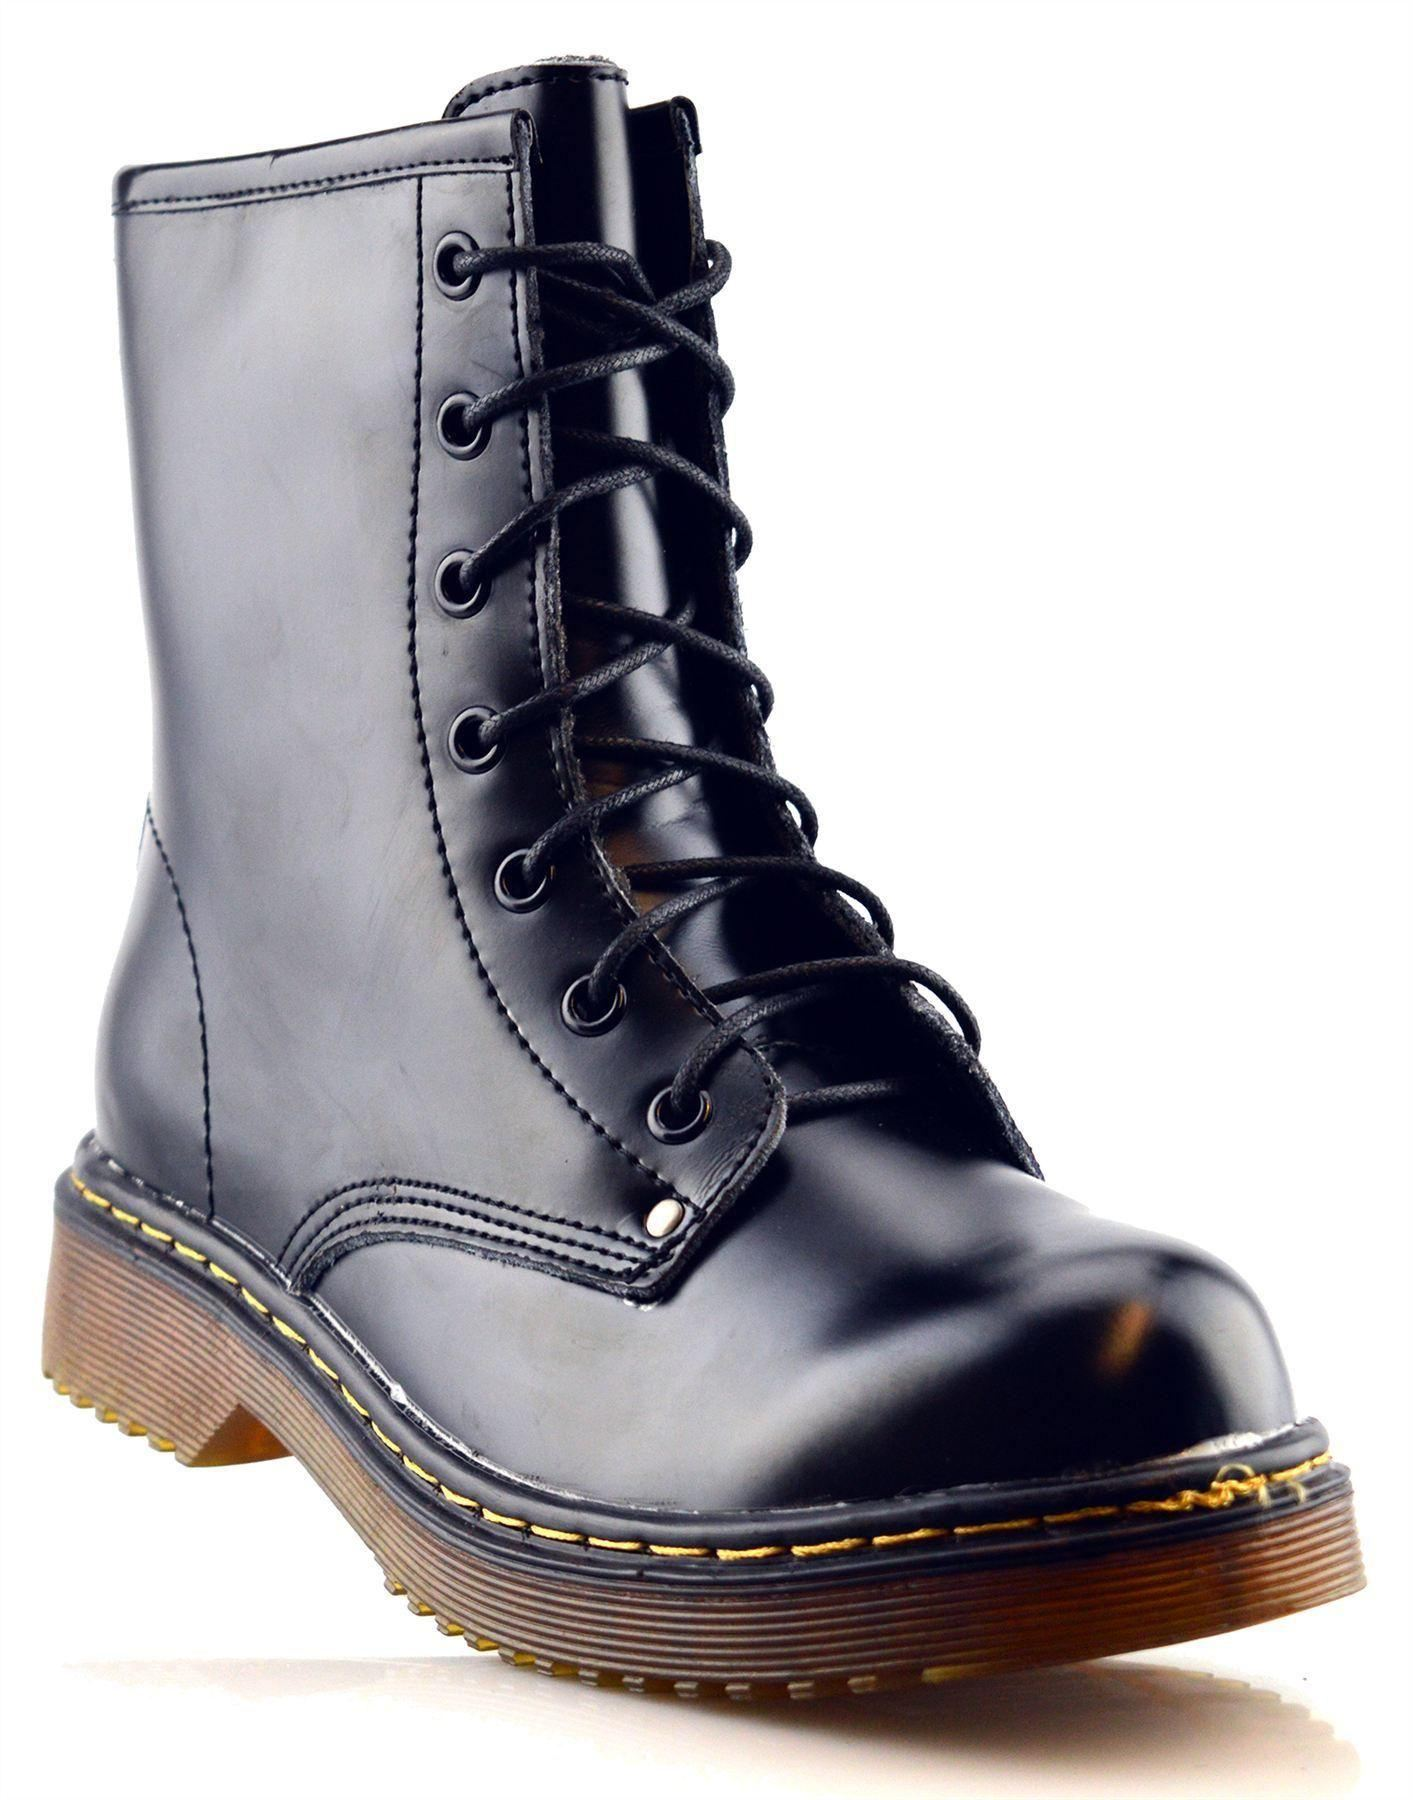 Ladies fashion collection of boots and leather motorcycle riding boots in an interesting variety that only Jamin Leather can offer. These woman's boots come in a variety of colors, heights, heels and styles at low discounted prices.